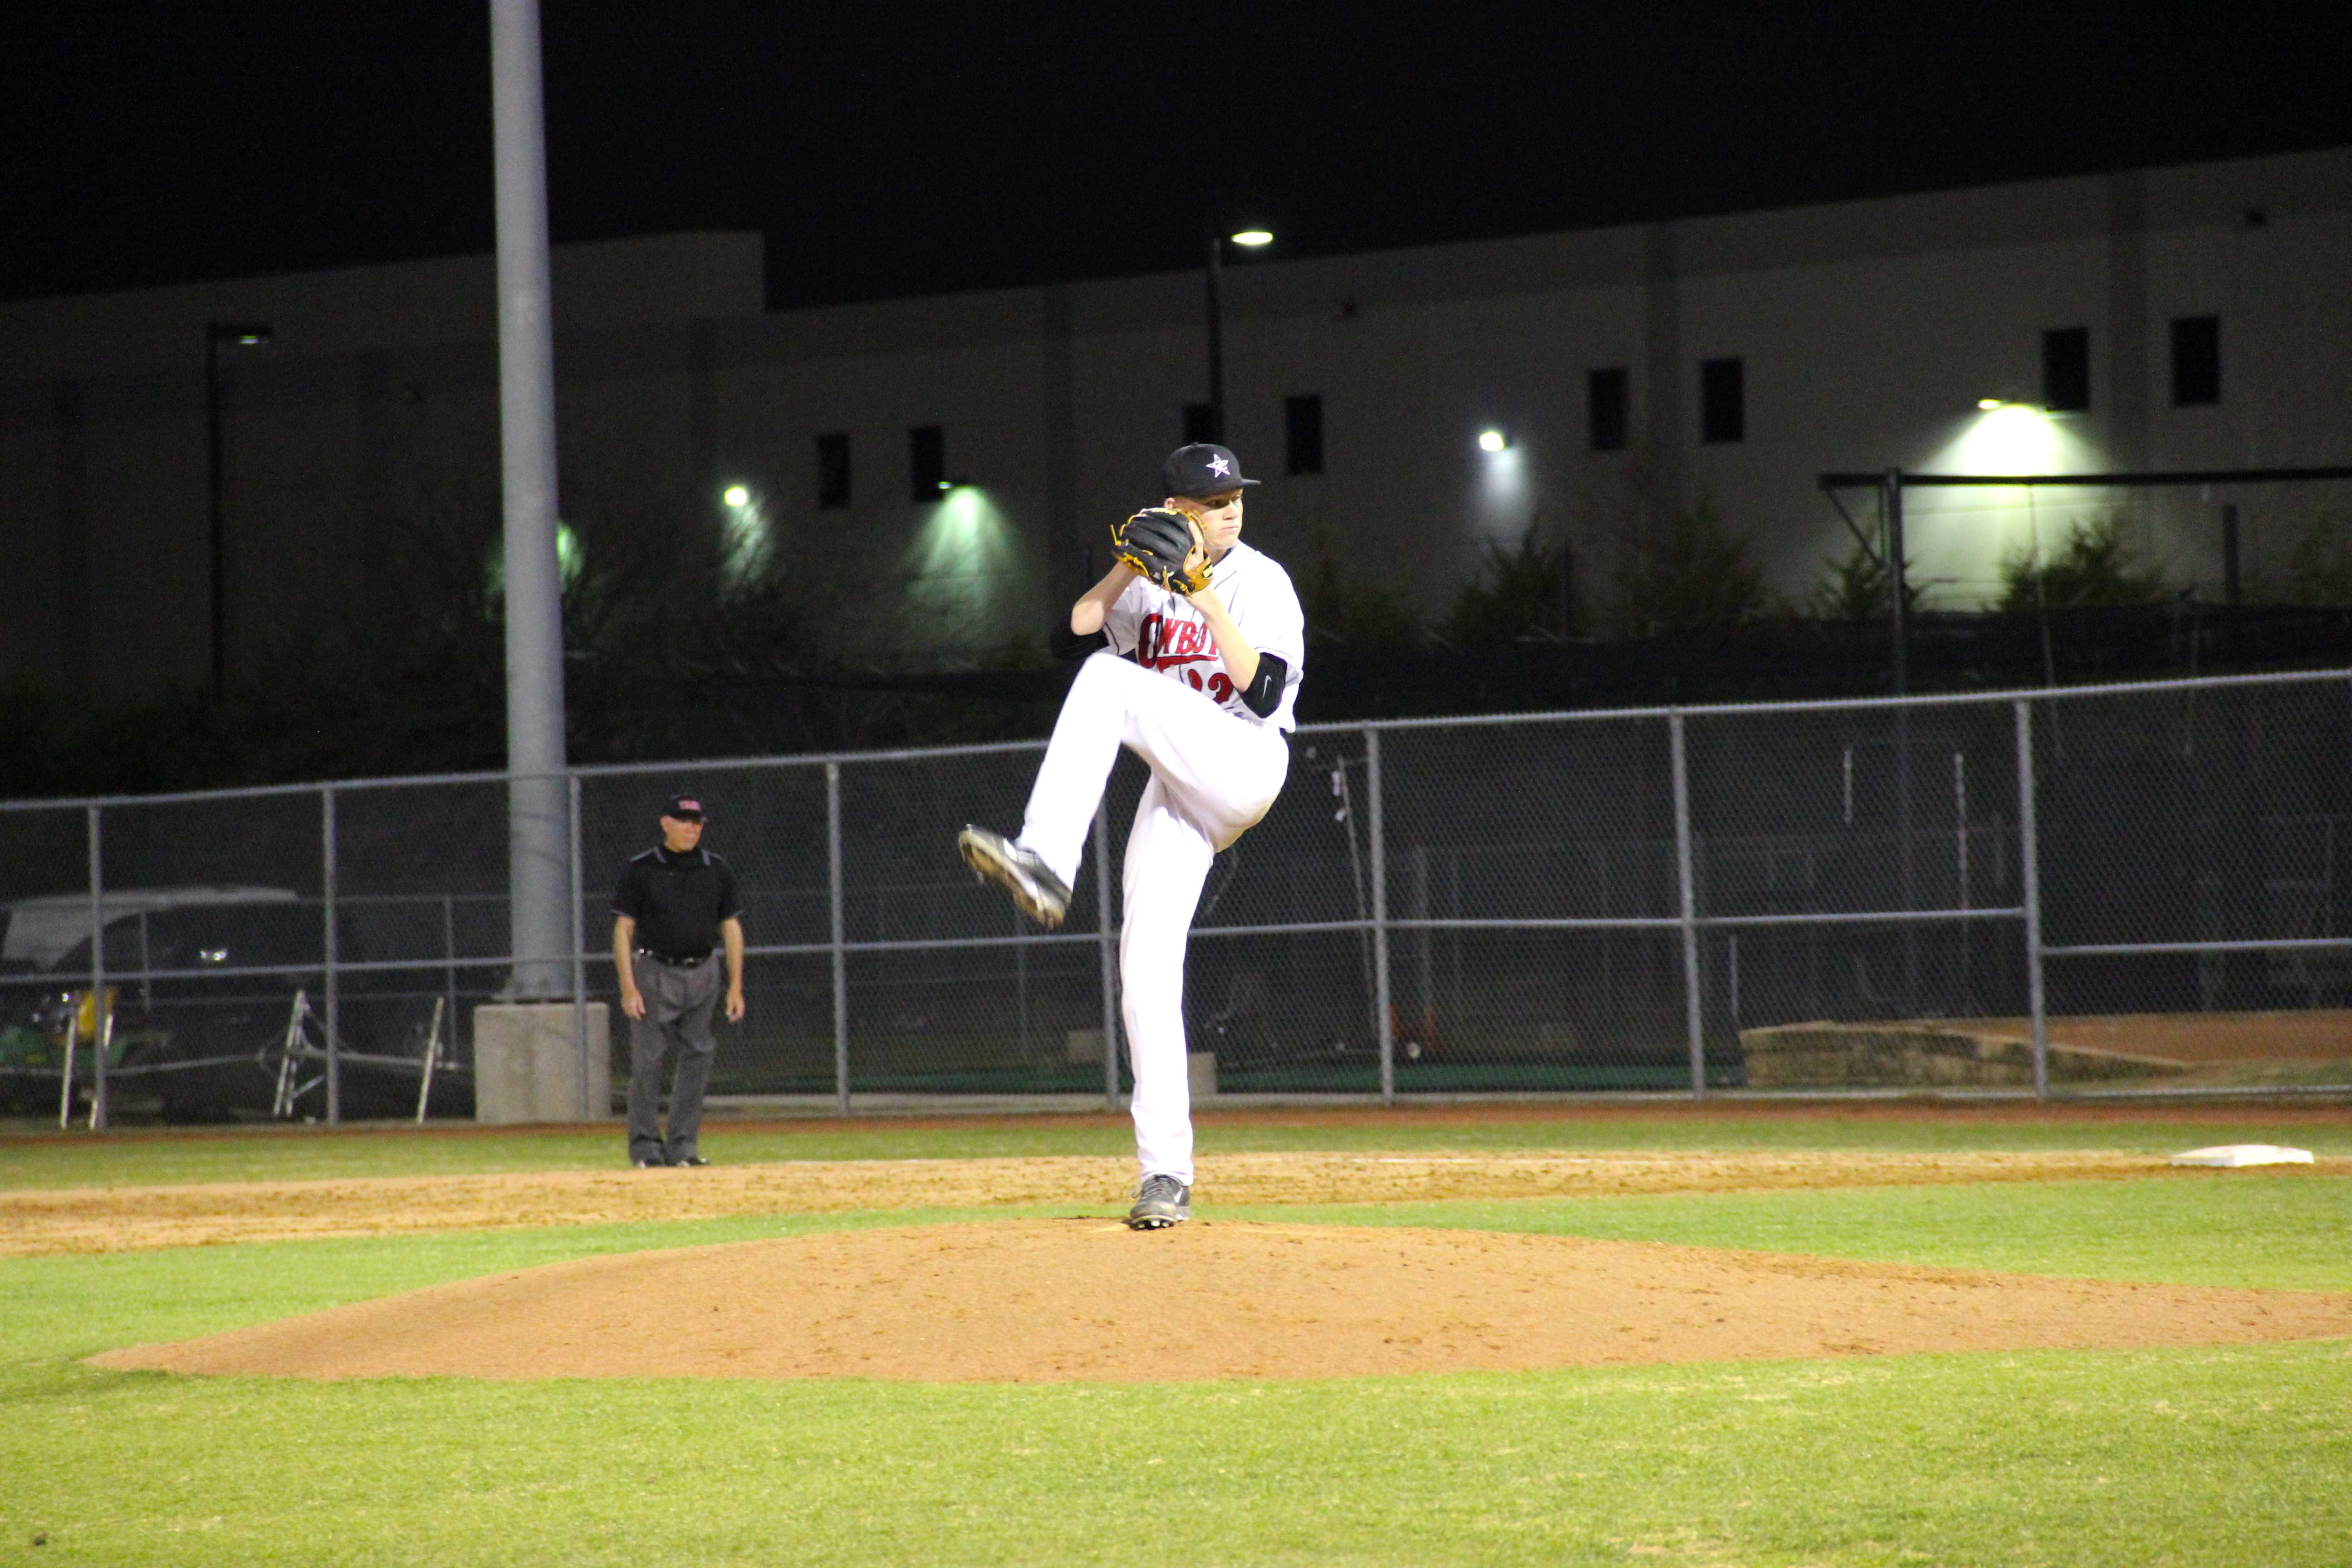 Junior righthanded pitcher Jensen Elliott gets ready to give an opposing batter the heat in Coppell's Mar. 18 matchup against the Flower Mound  Marcus Marauders. The Cowboys will take the rubber on Tuesday night against Denton Ryan. Photo by Alyssa Frost.